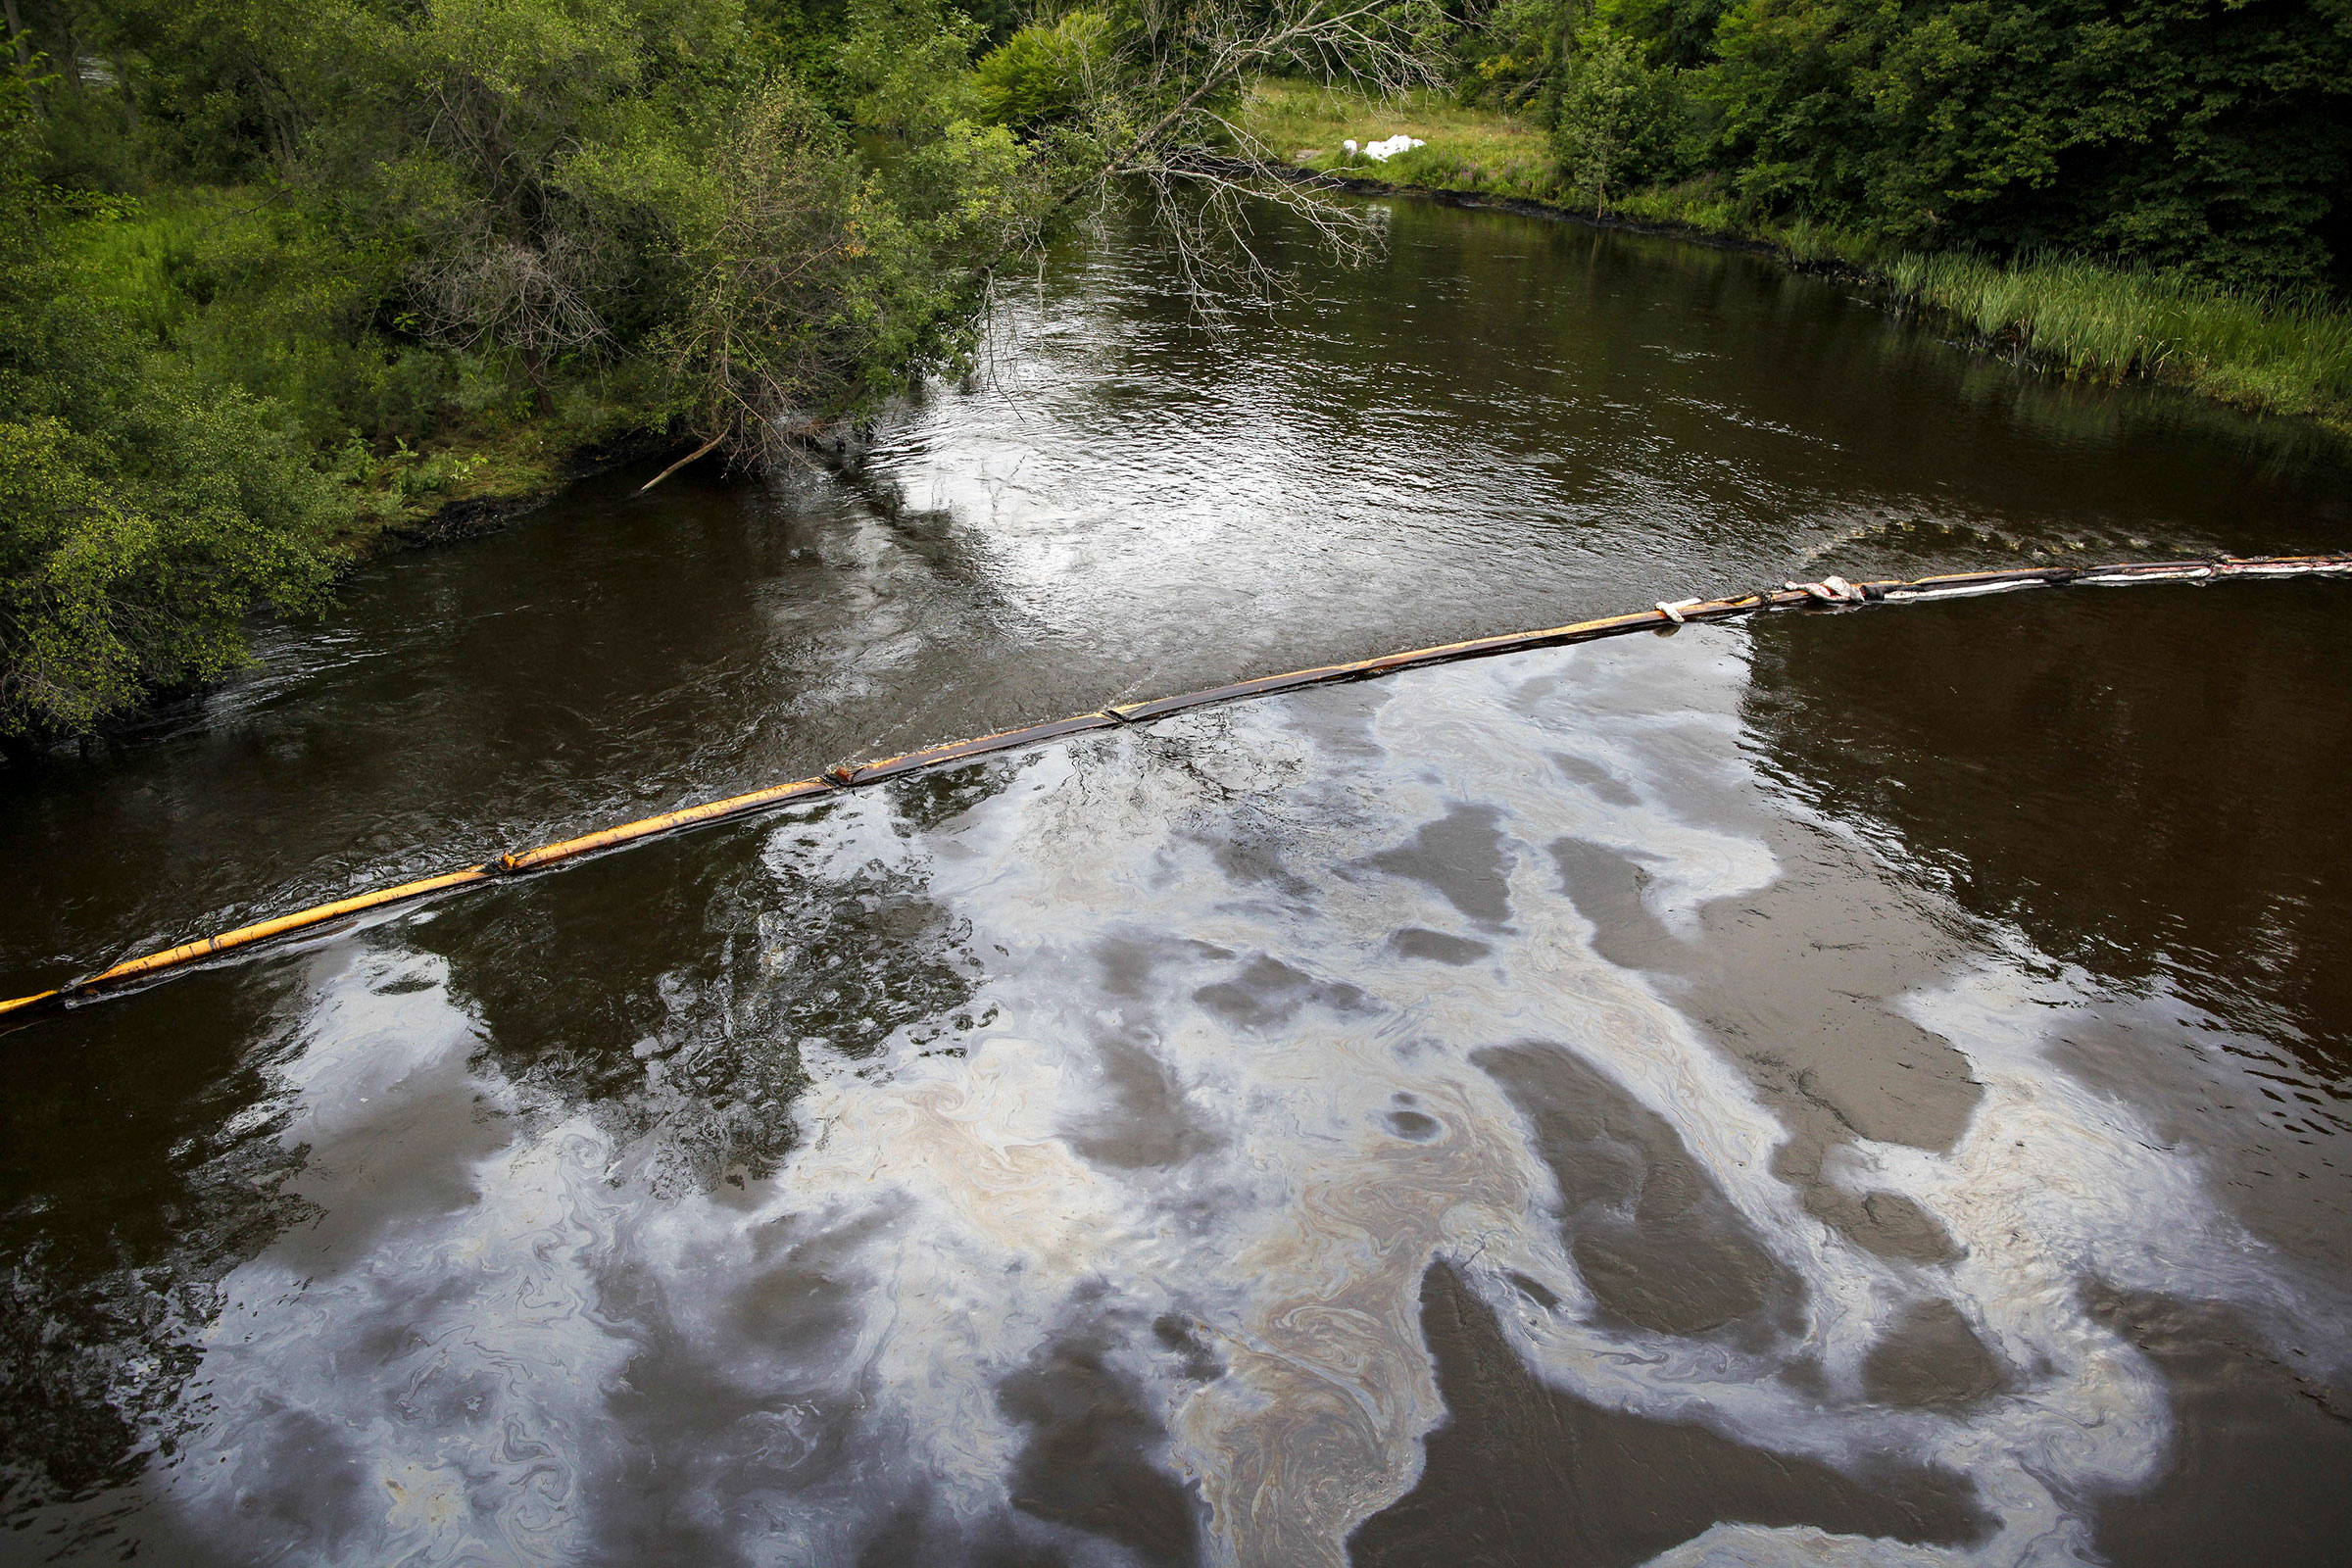 A boom traps oil as it flows down the Kalamazoo River in Michigan, July, 2010, where over 1.2 million gallons of tar sands crude oil were spilled from an Enbridge pipeline. Brian Kersey/UPI/Alamy